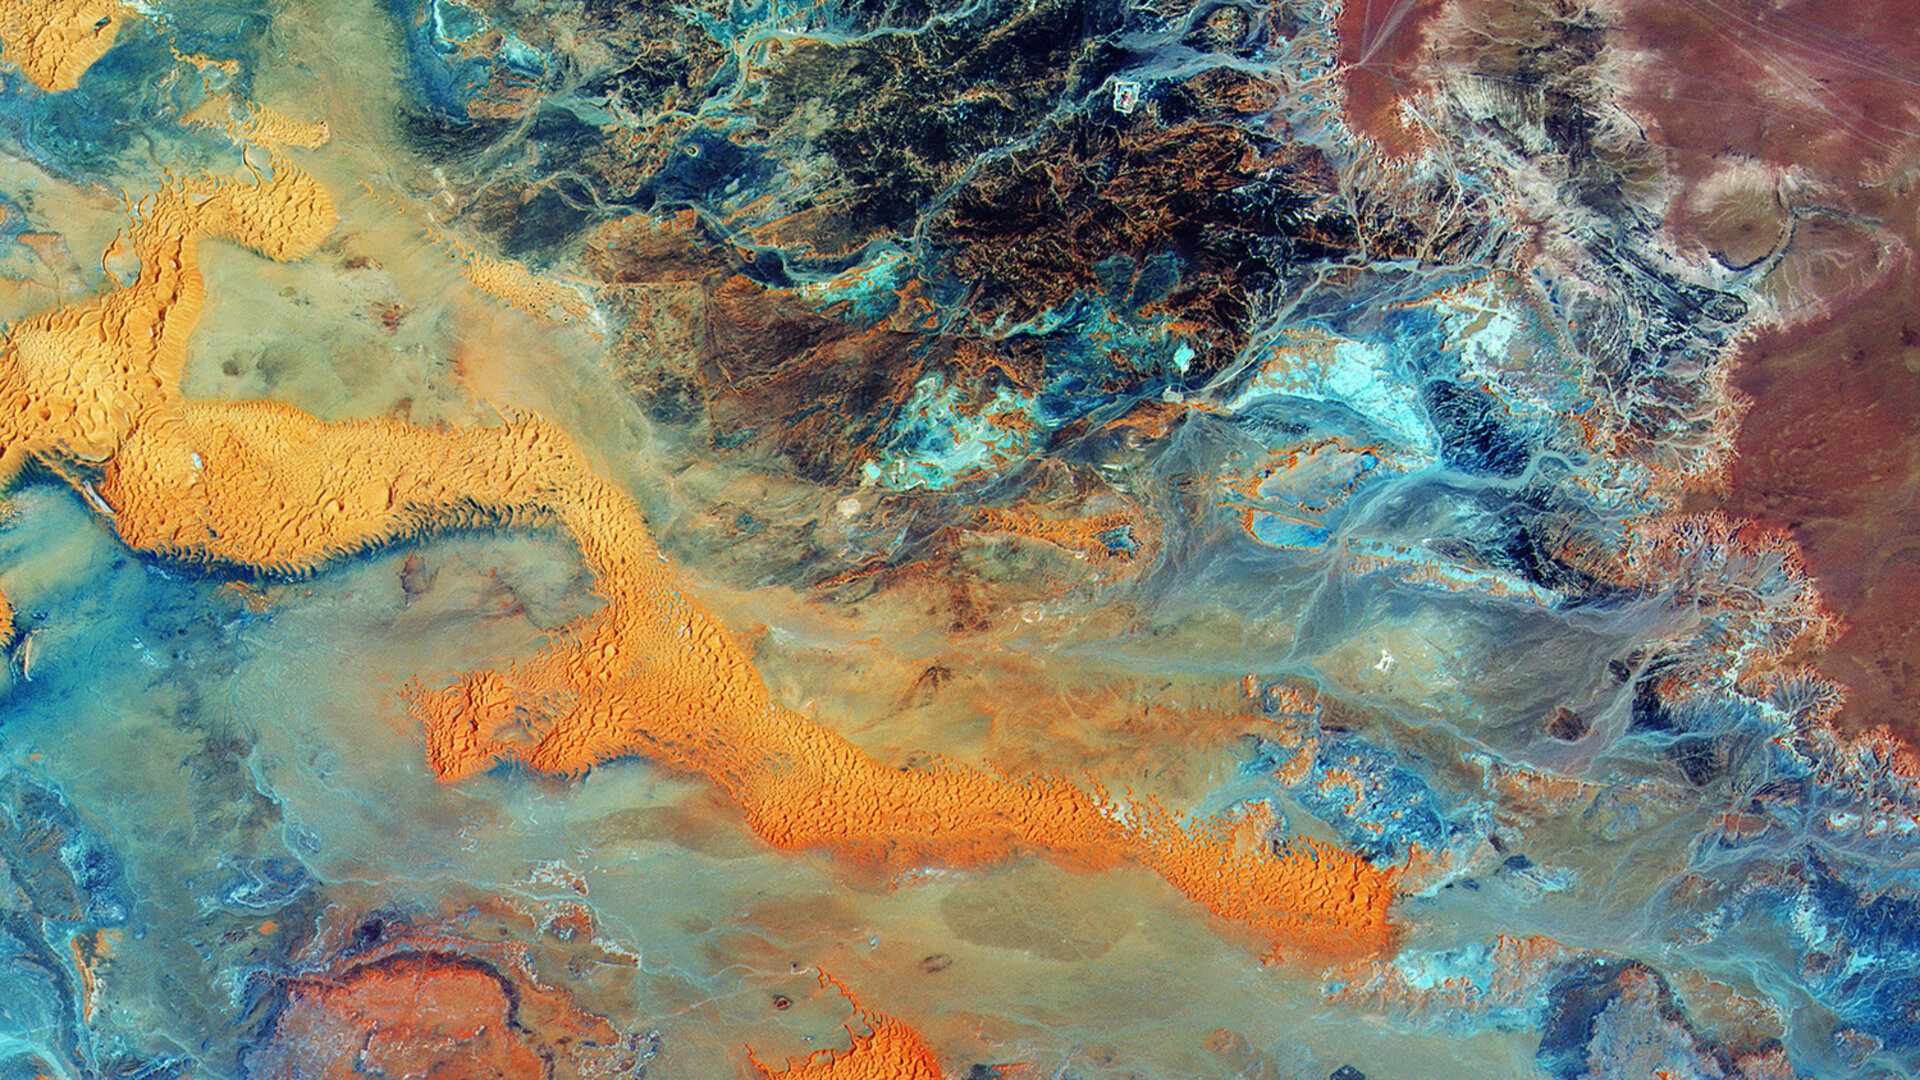 Colours and structures in Libya's desert imaged by the Copernicus Sentinel-2A satellite